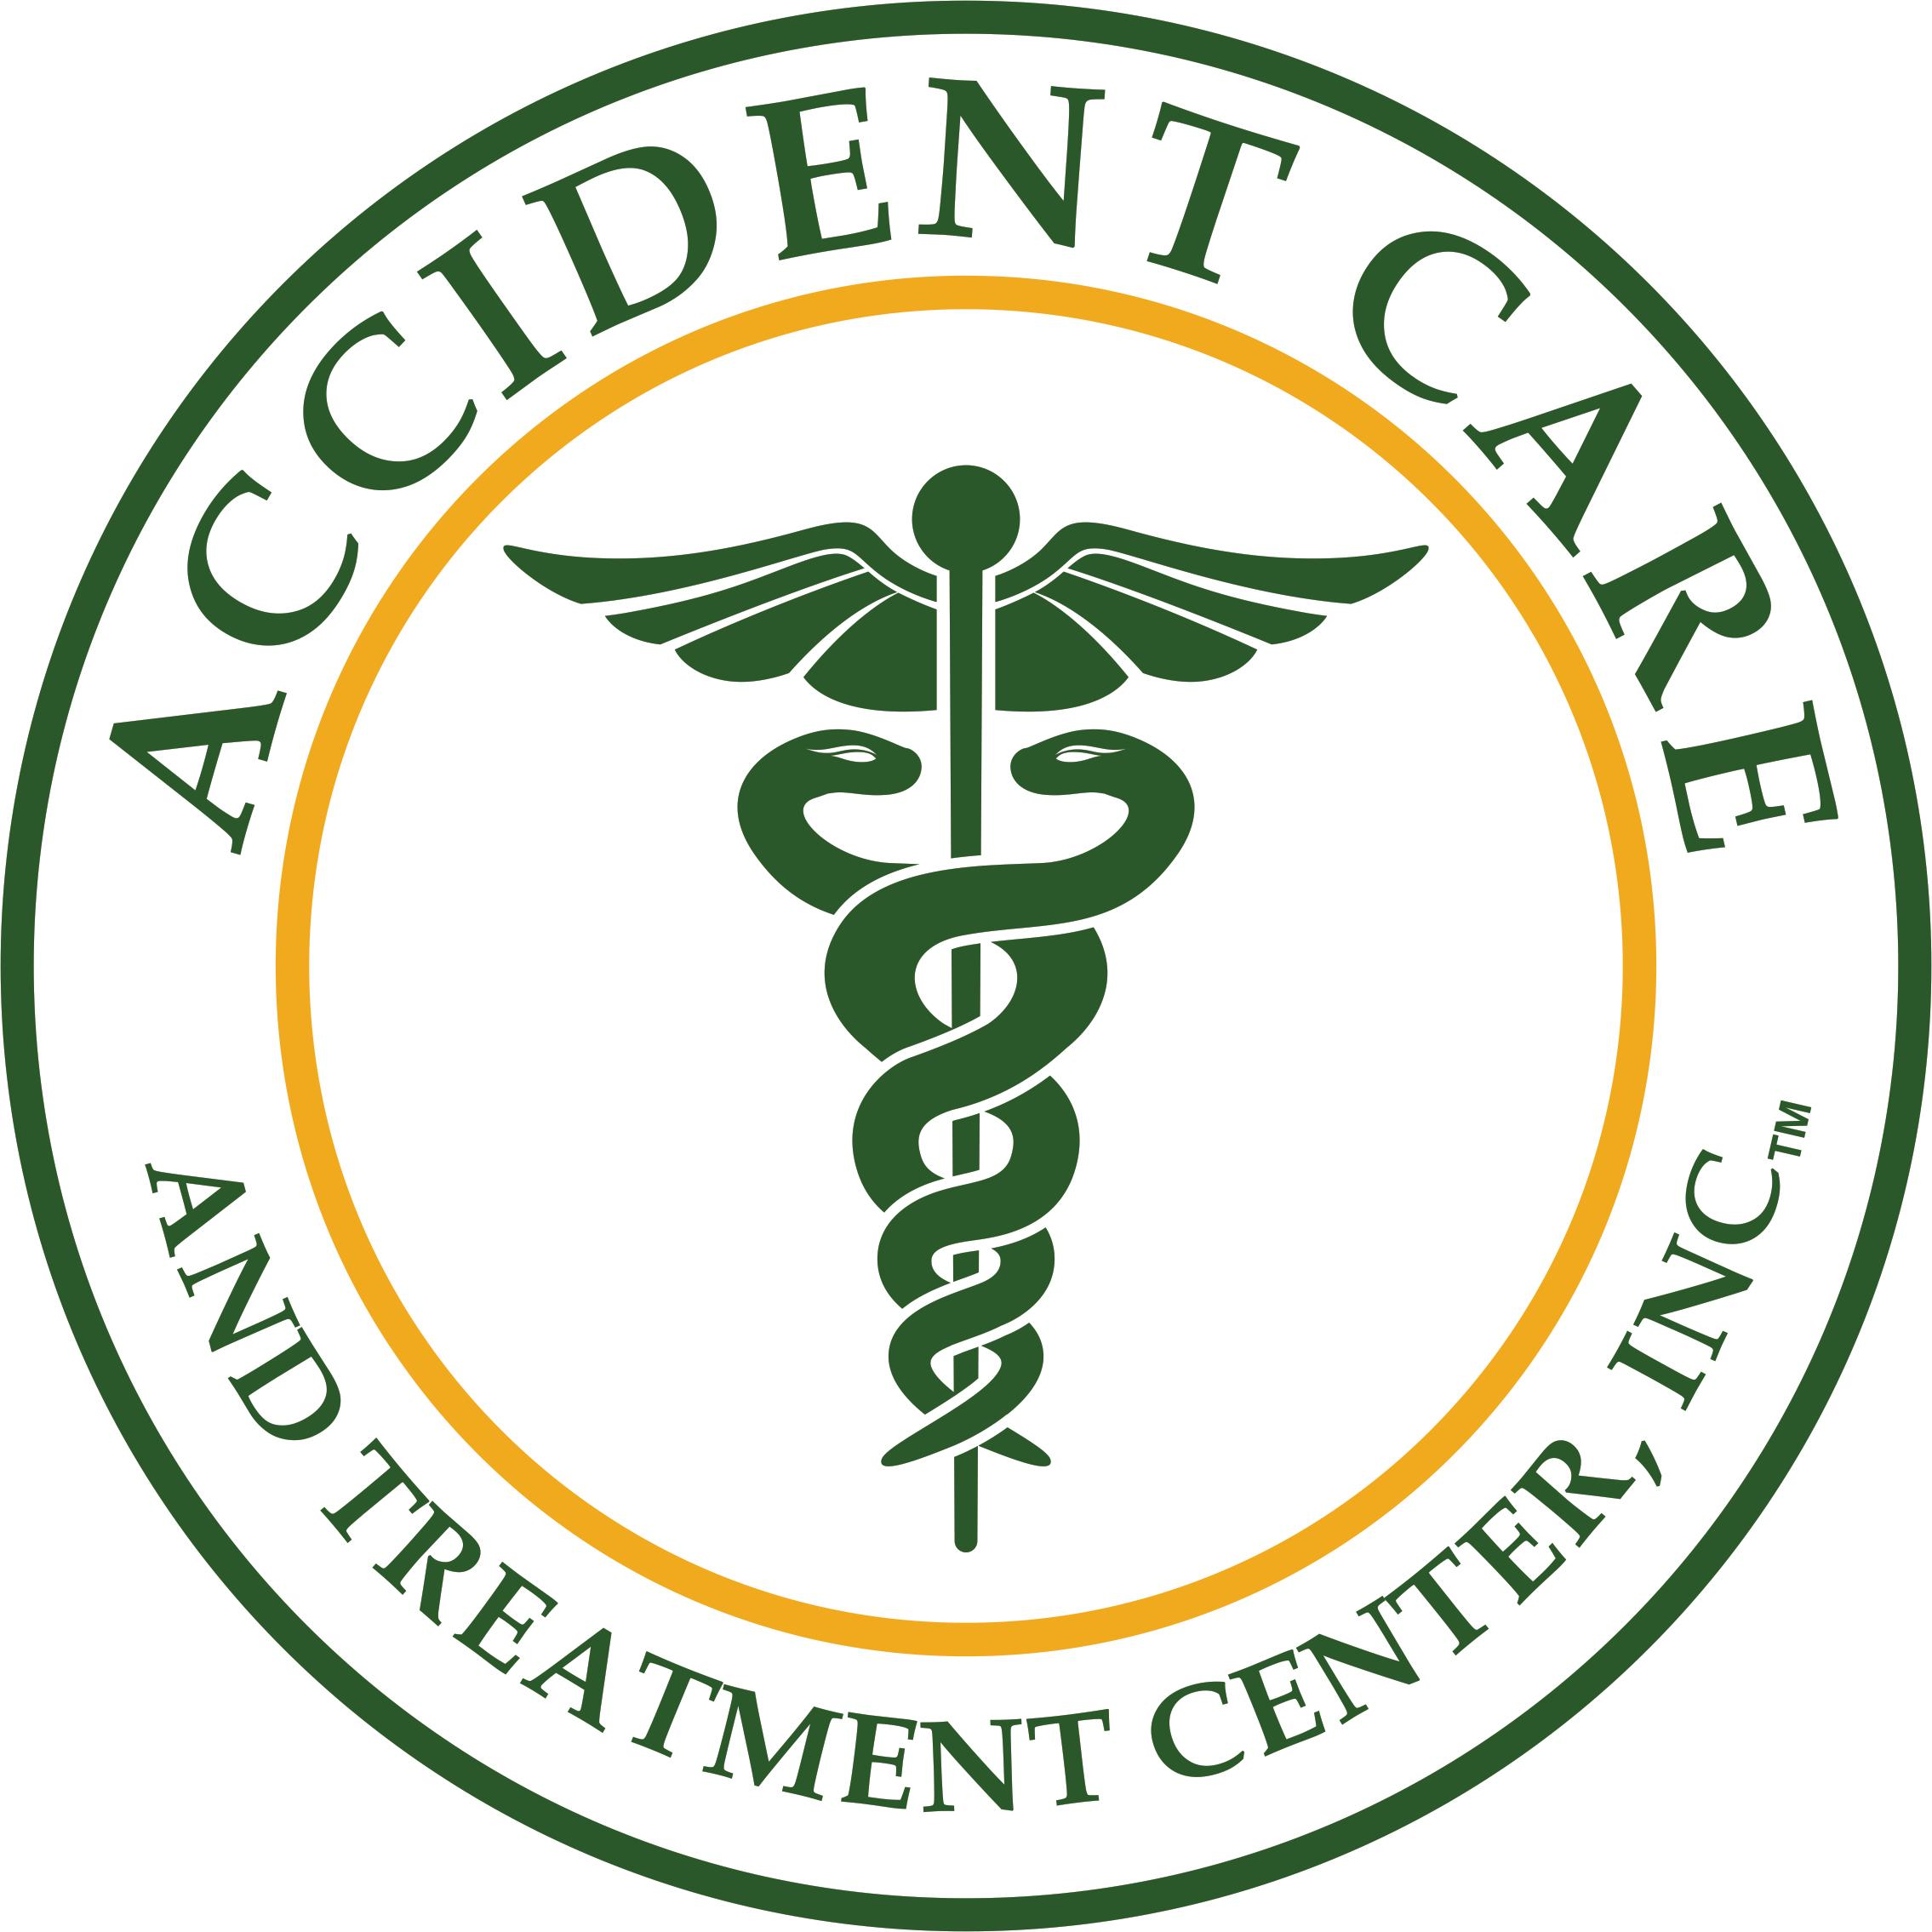 Accident Care and Treatment Center, Inc.